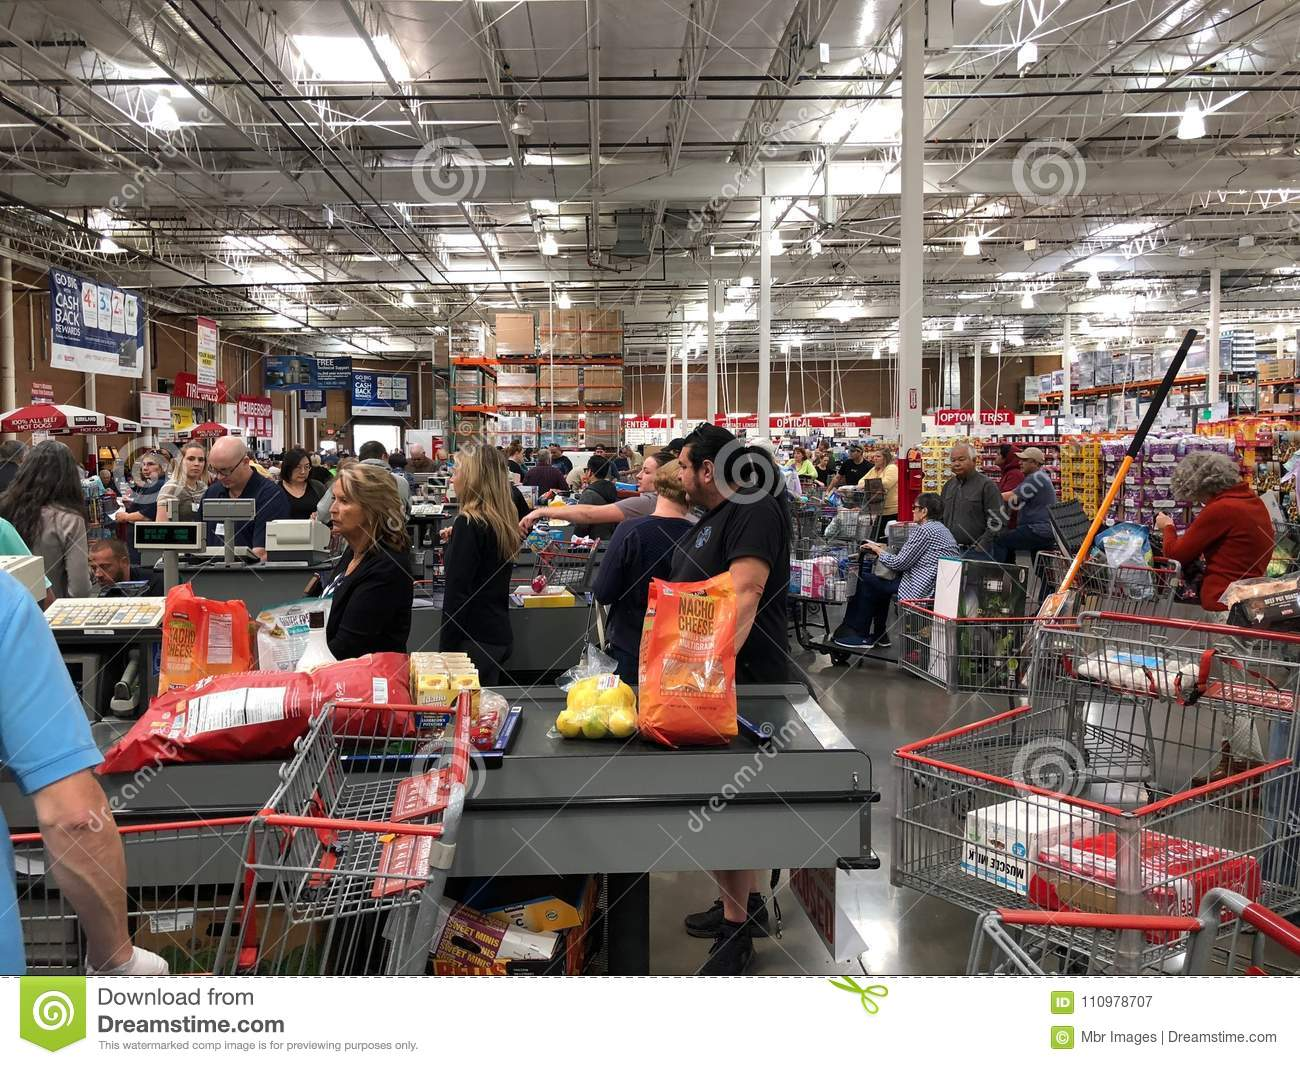 Costco Cashiers Helping People Check Out The Products They Are About Purchase